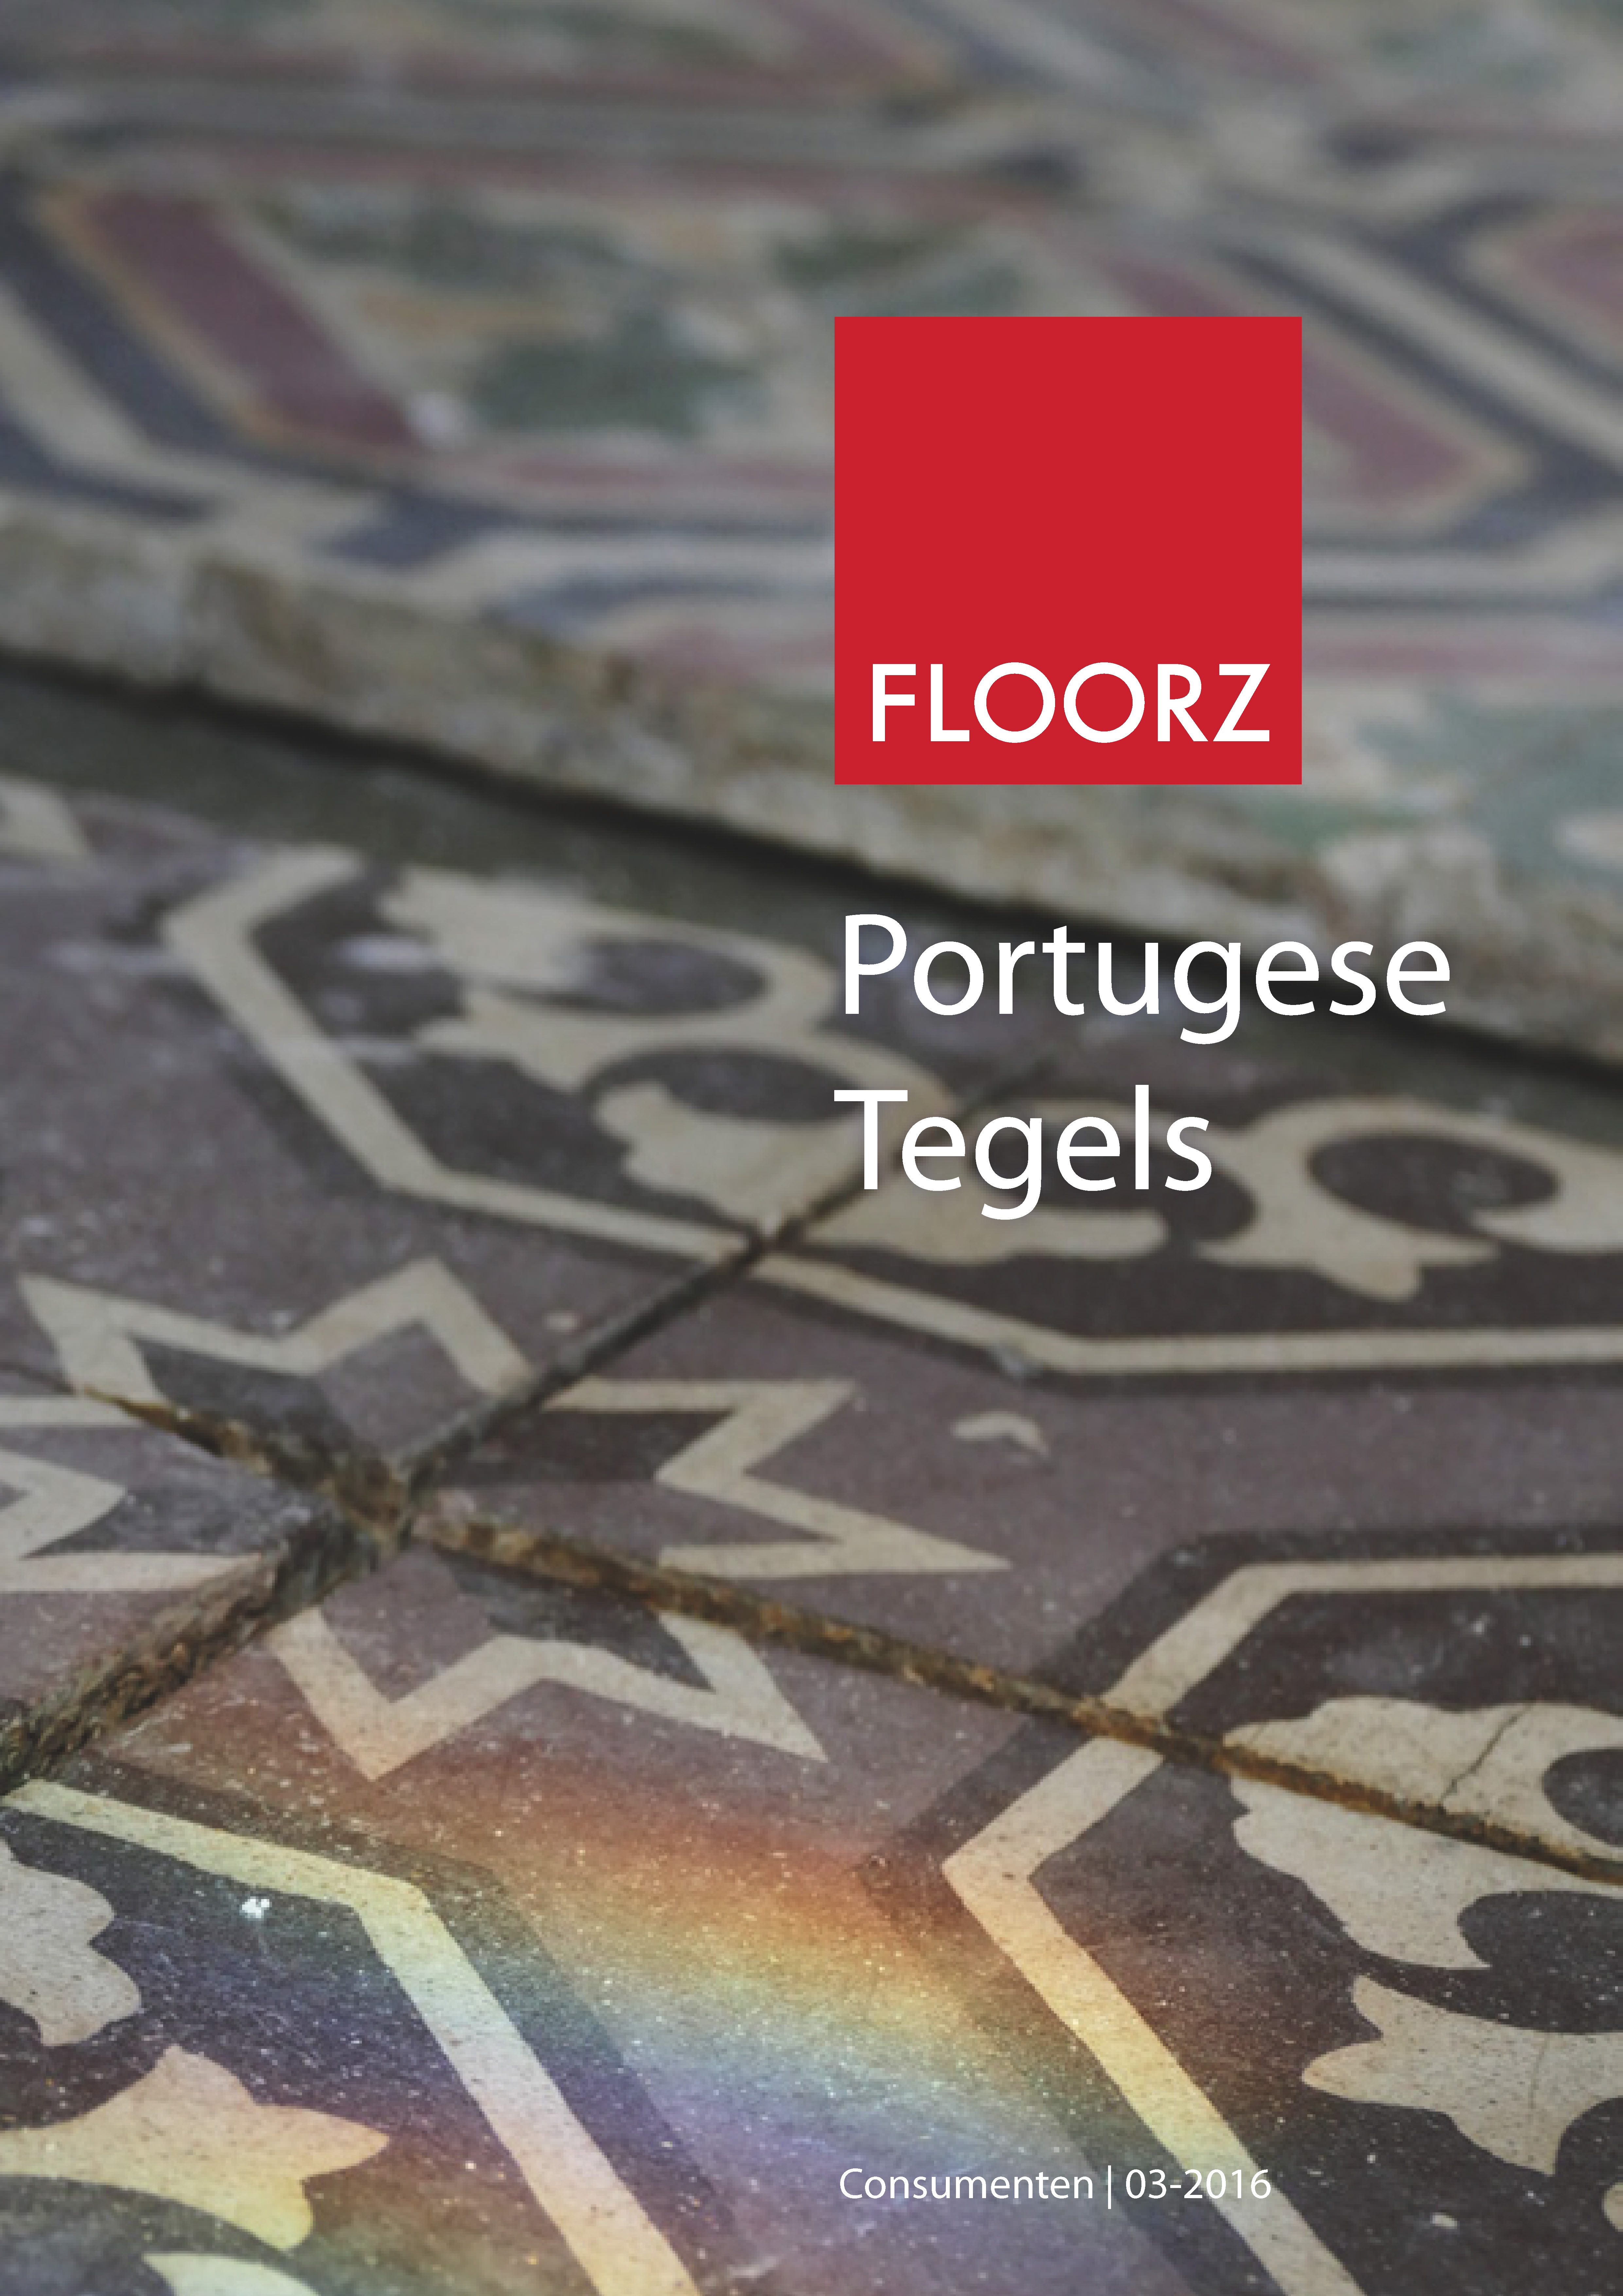 Productbrochure - Floorz